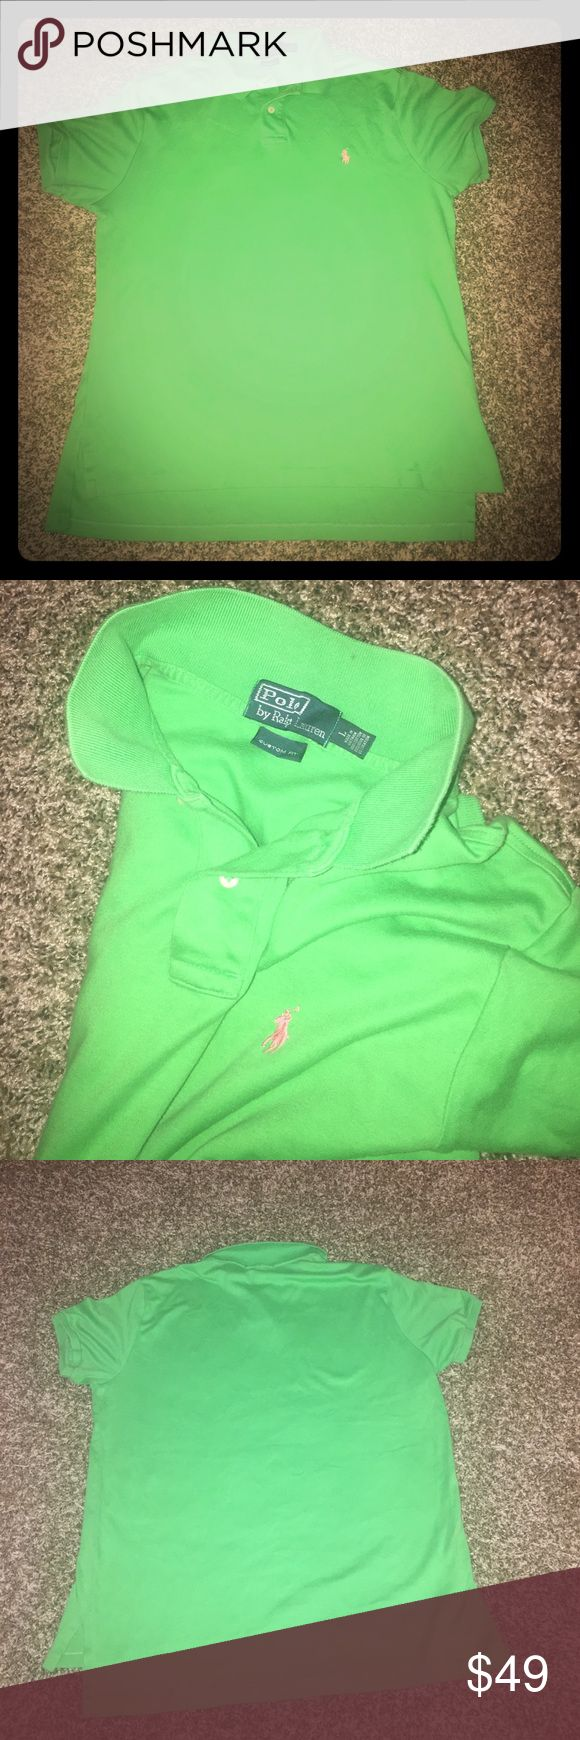 Ralph Lauren Custom Fit Pima Polo Green Large Size Large: custom fit so, it's more like a medium.  It fits like a RL Large. RL's Pima Soft-Touch Polo shirt has been specially treated to give it a lustrous, refined appearance and an ultra-soft feel. collar and armbands are constructed to retain fit.  Custom Fit: the second-slimmest silhouette from Polo.  Ribbed Polo collar. Two-button placket. Short sleeves with ribbed armbands. Tennis tail. Pinkish orange signature embroidered pony at the…